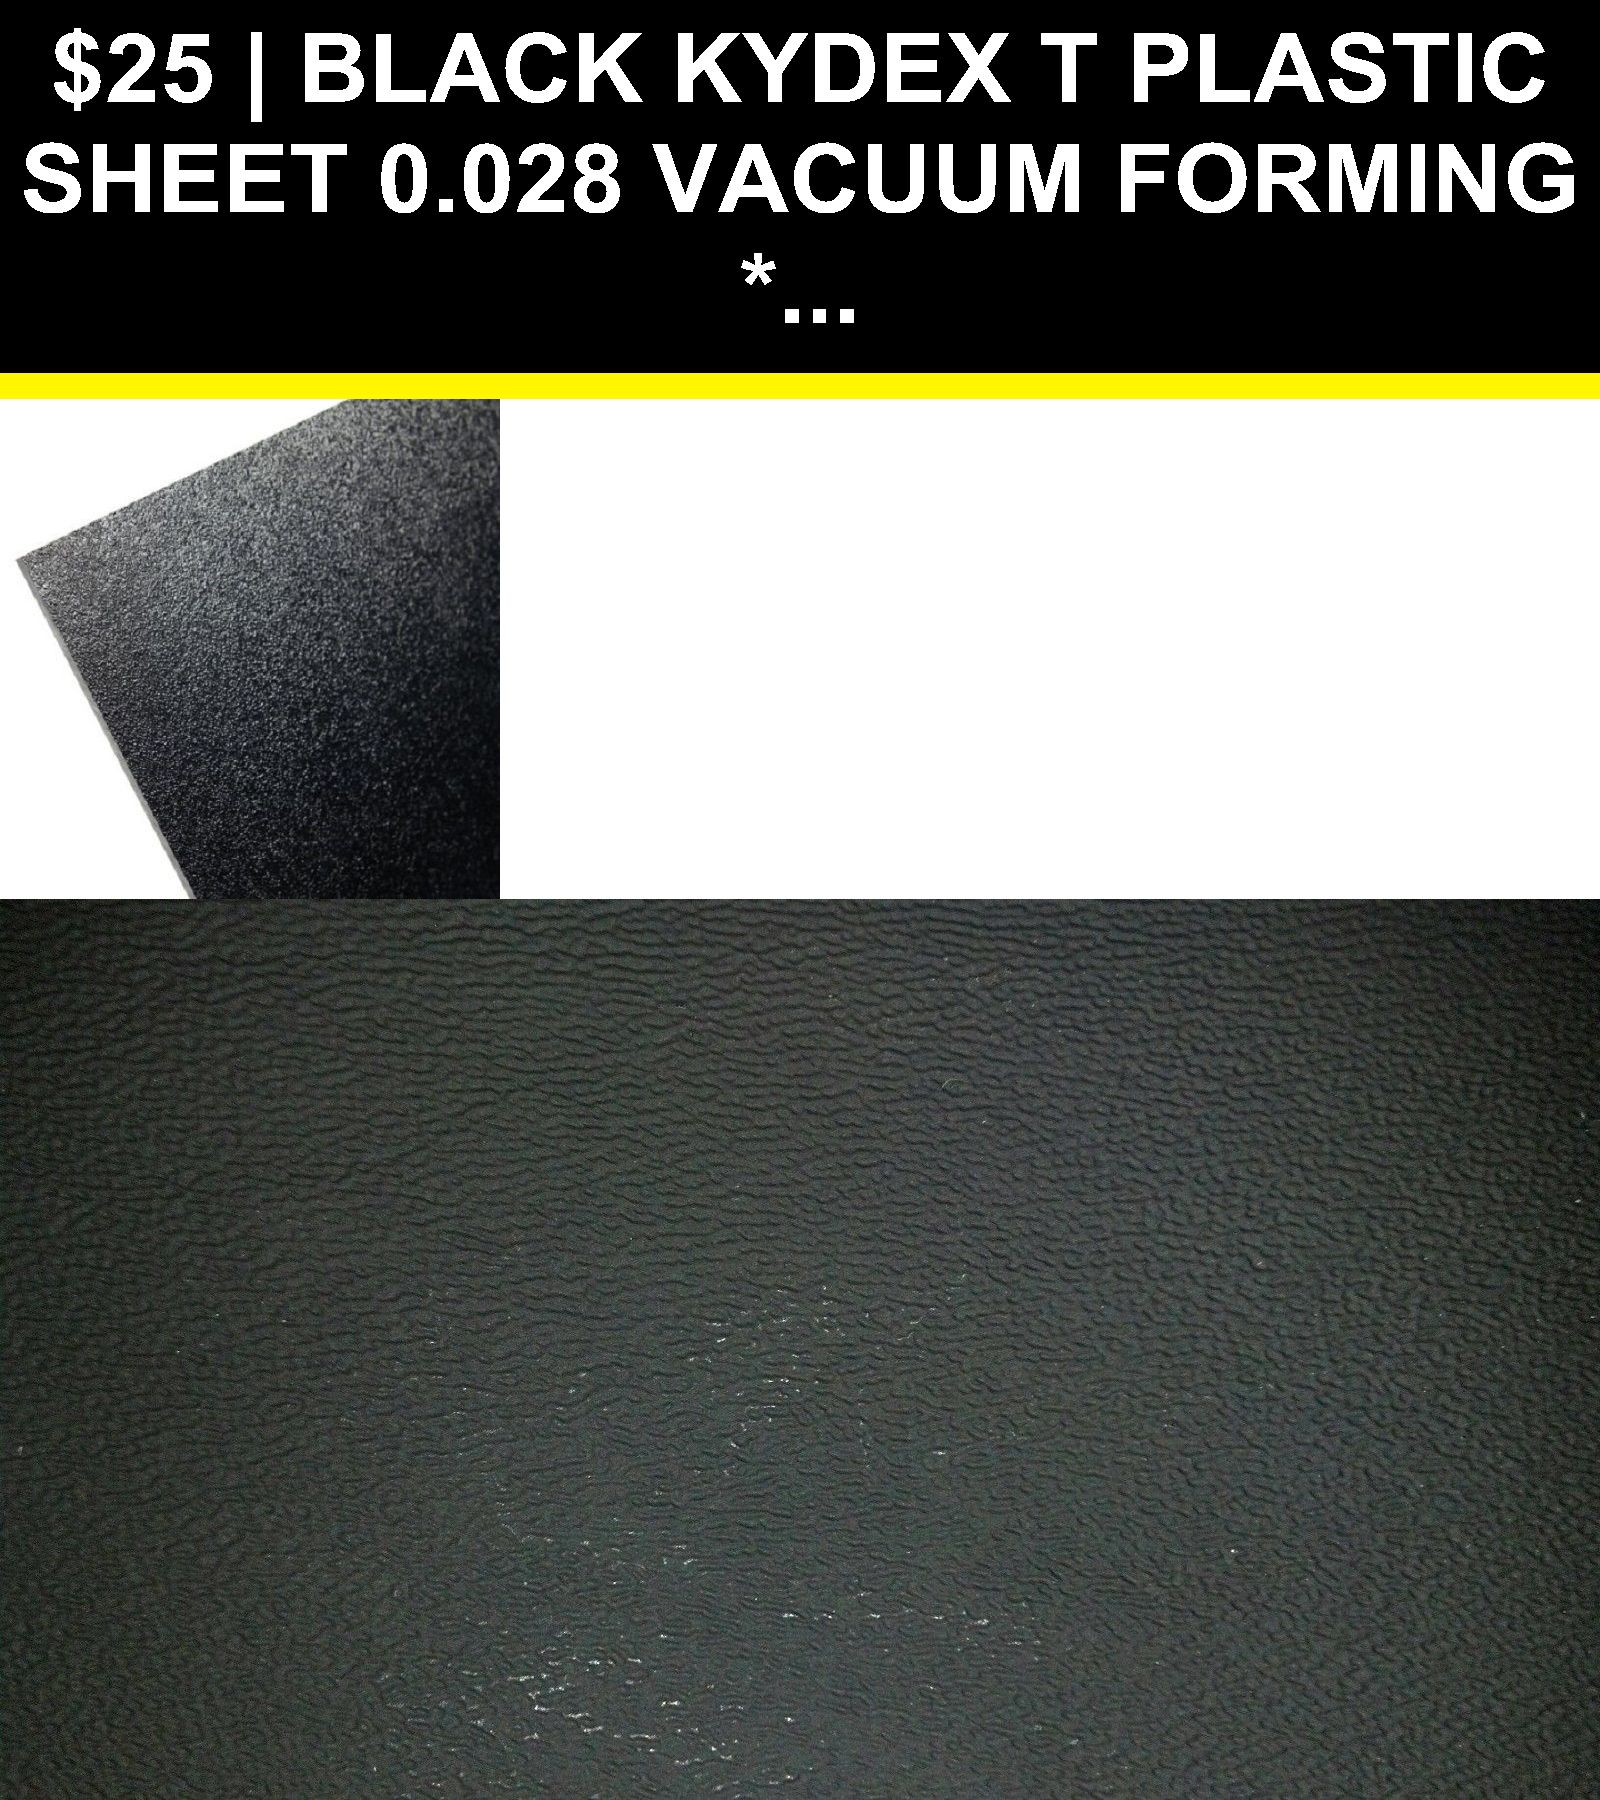 Black Kydex T Plastic Sheet 0 028 Vacuum Forming You Pick Size Plastic Sheets Kydex Vacuum Forming